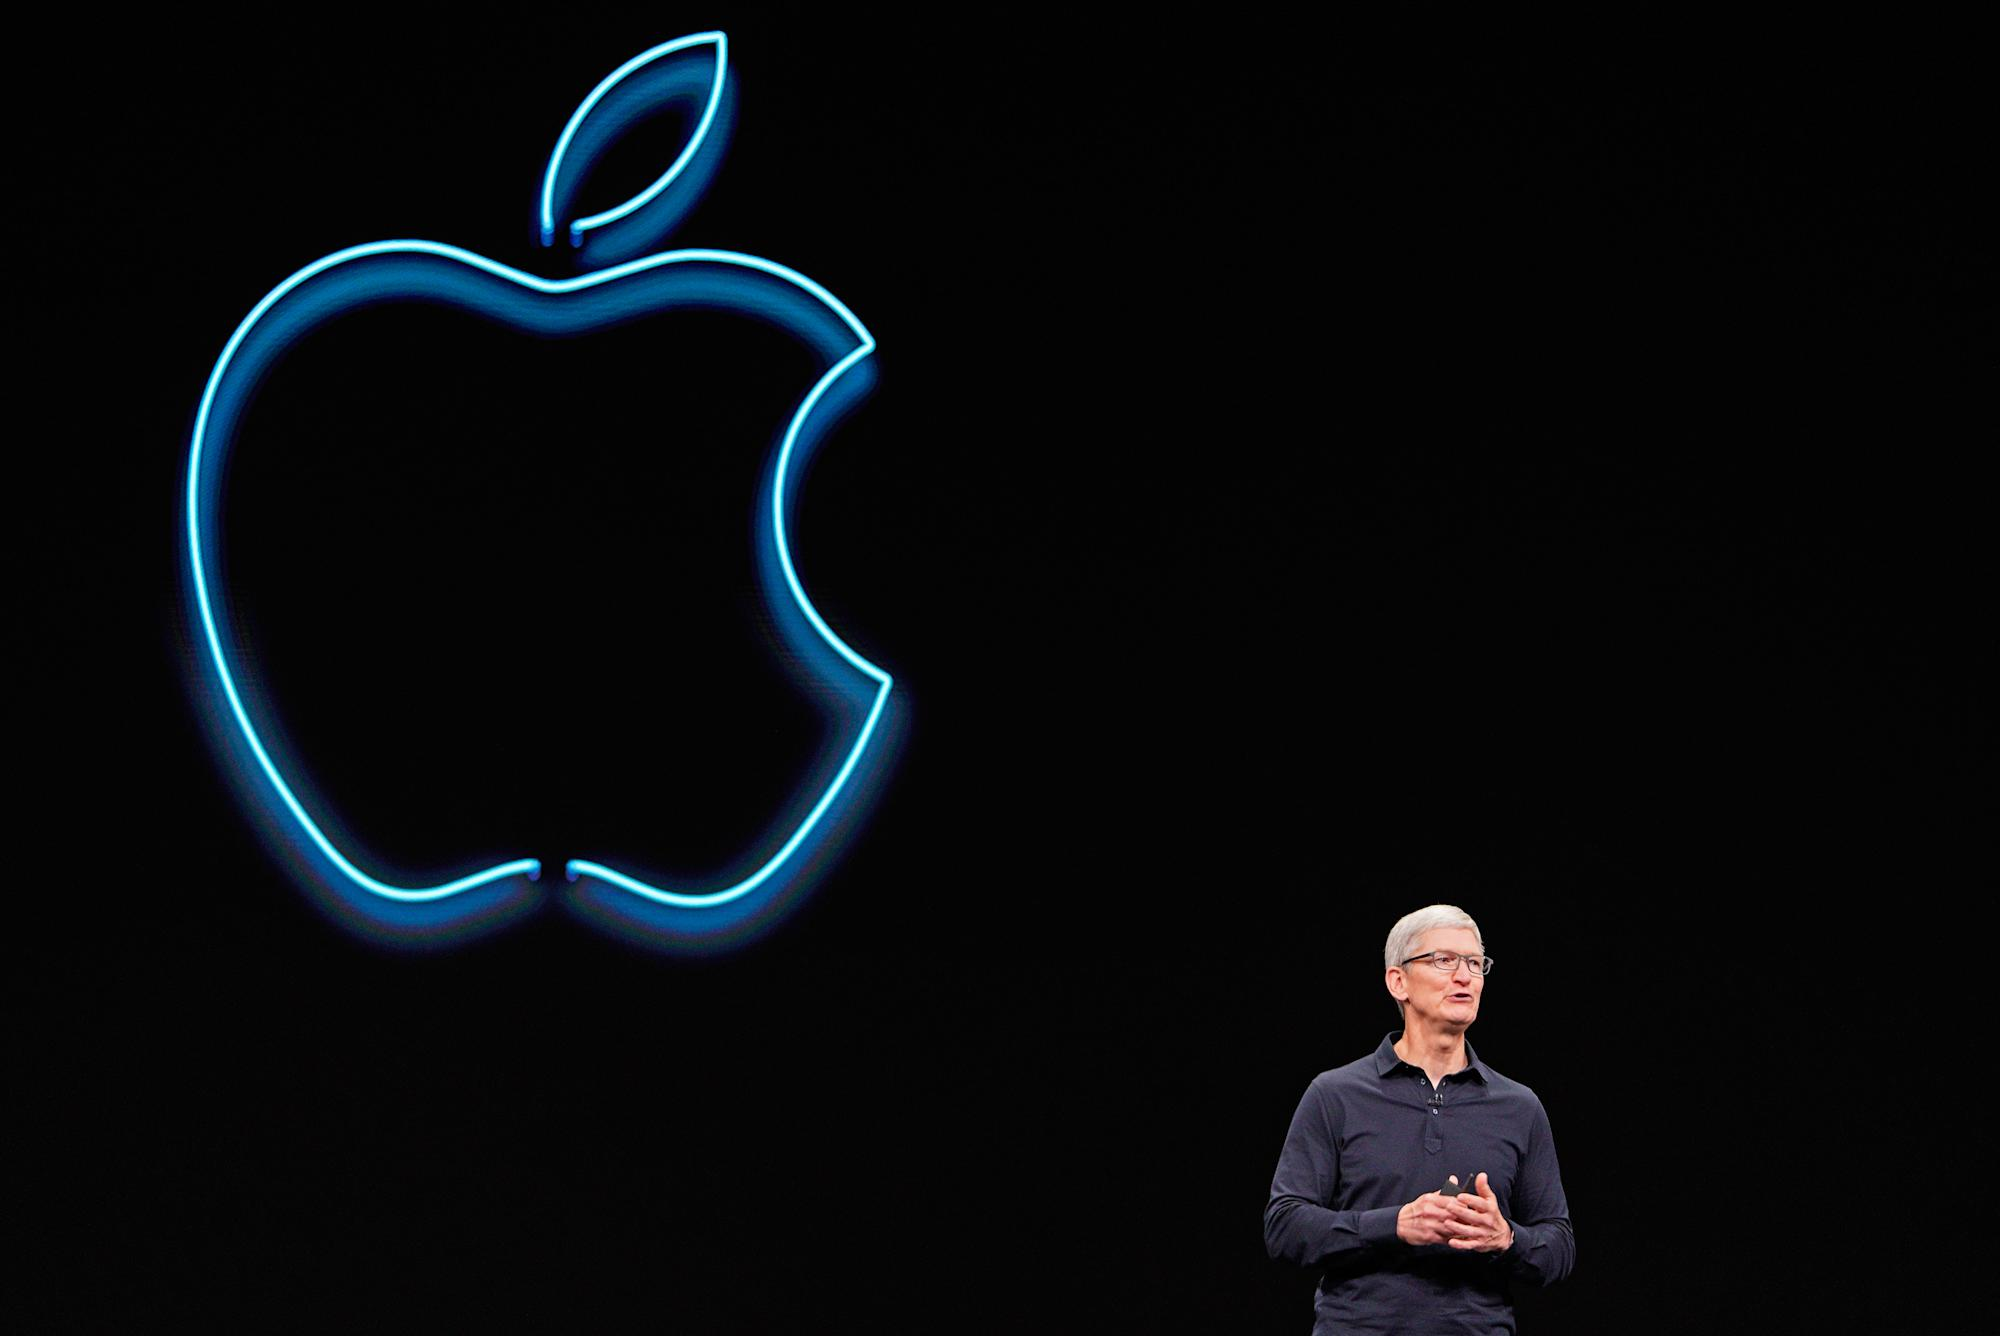 Apple's event on April 20: What to expect